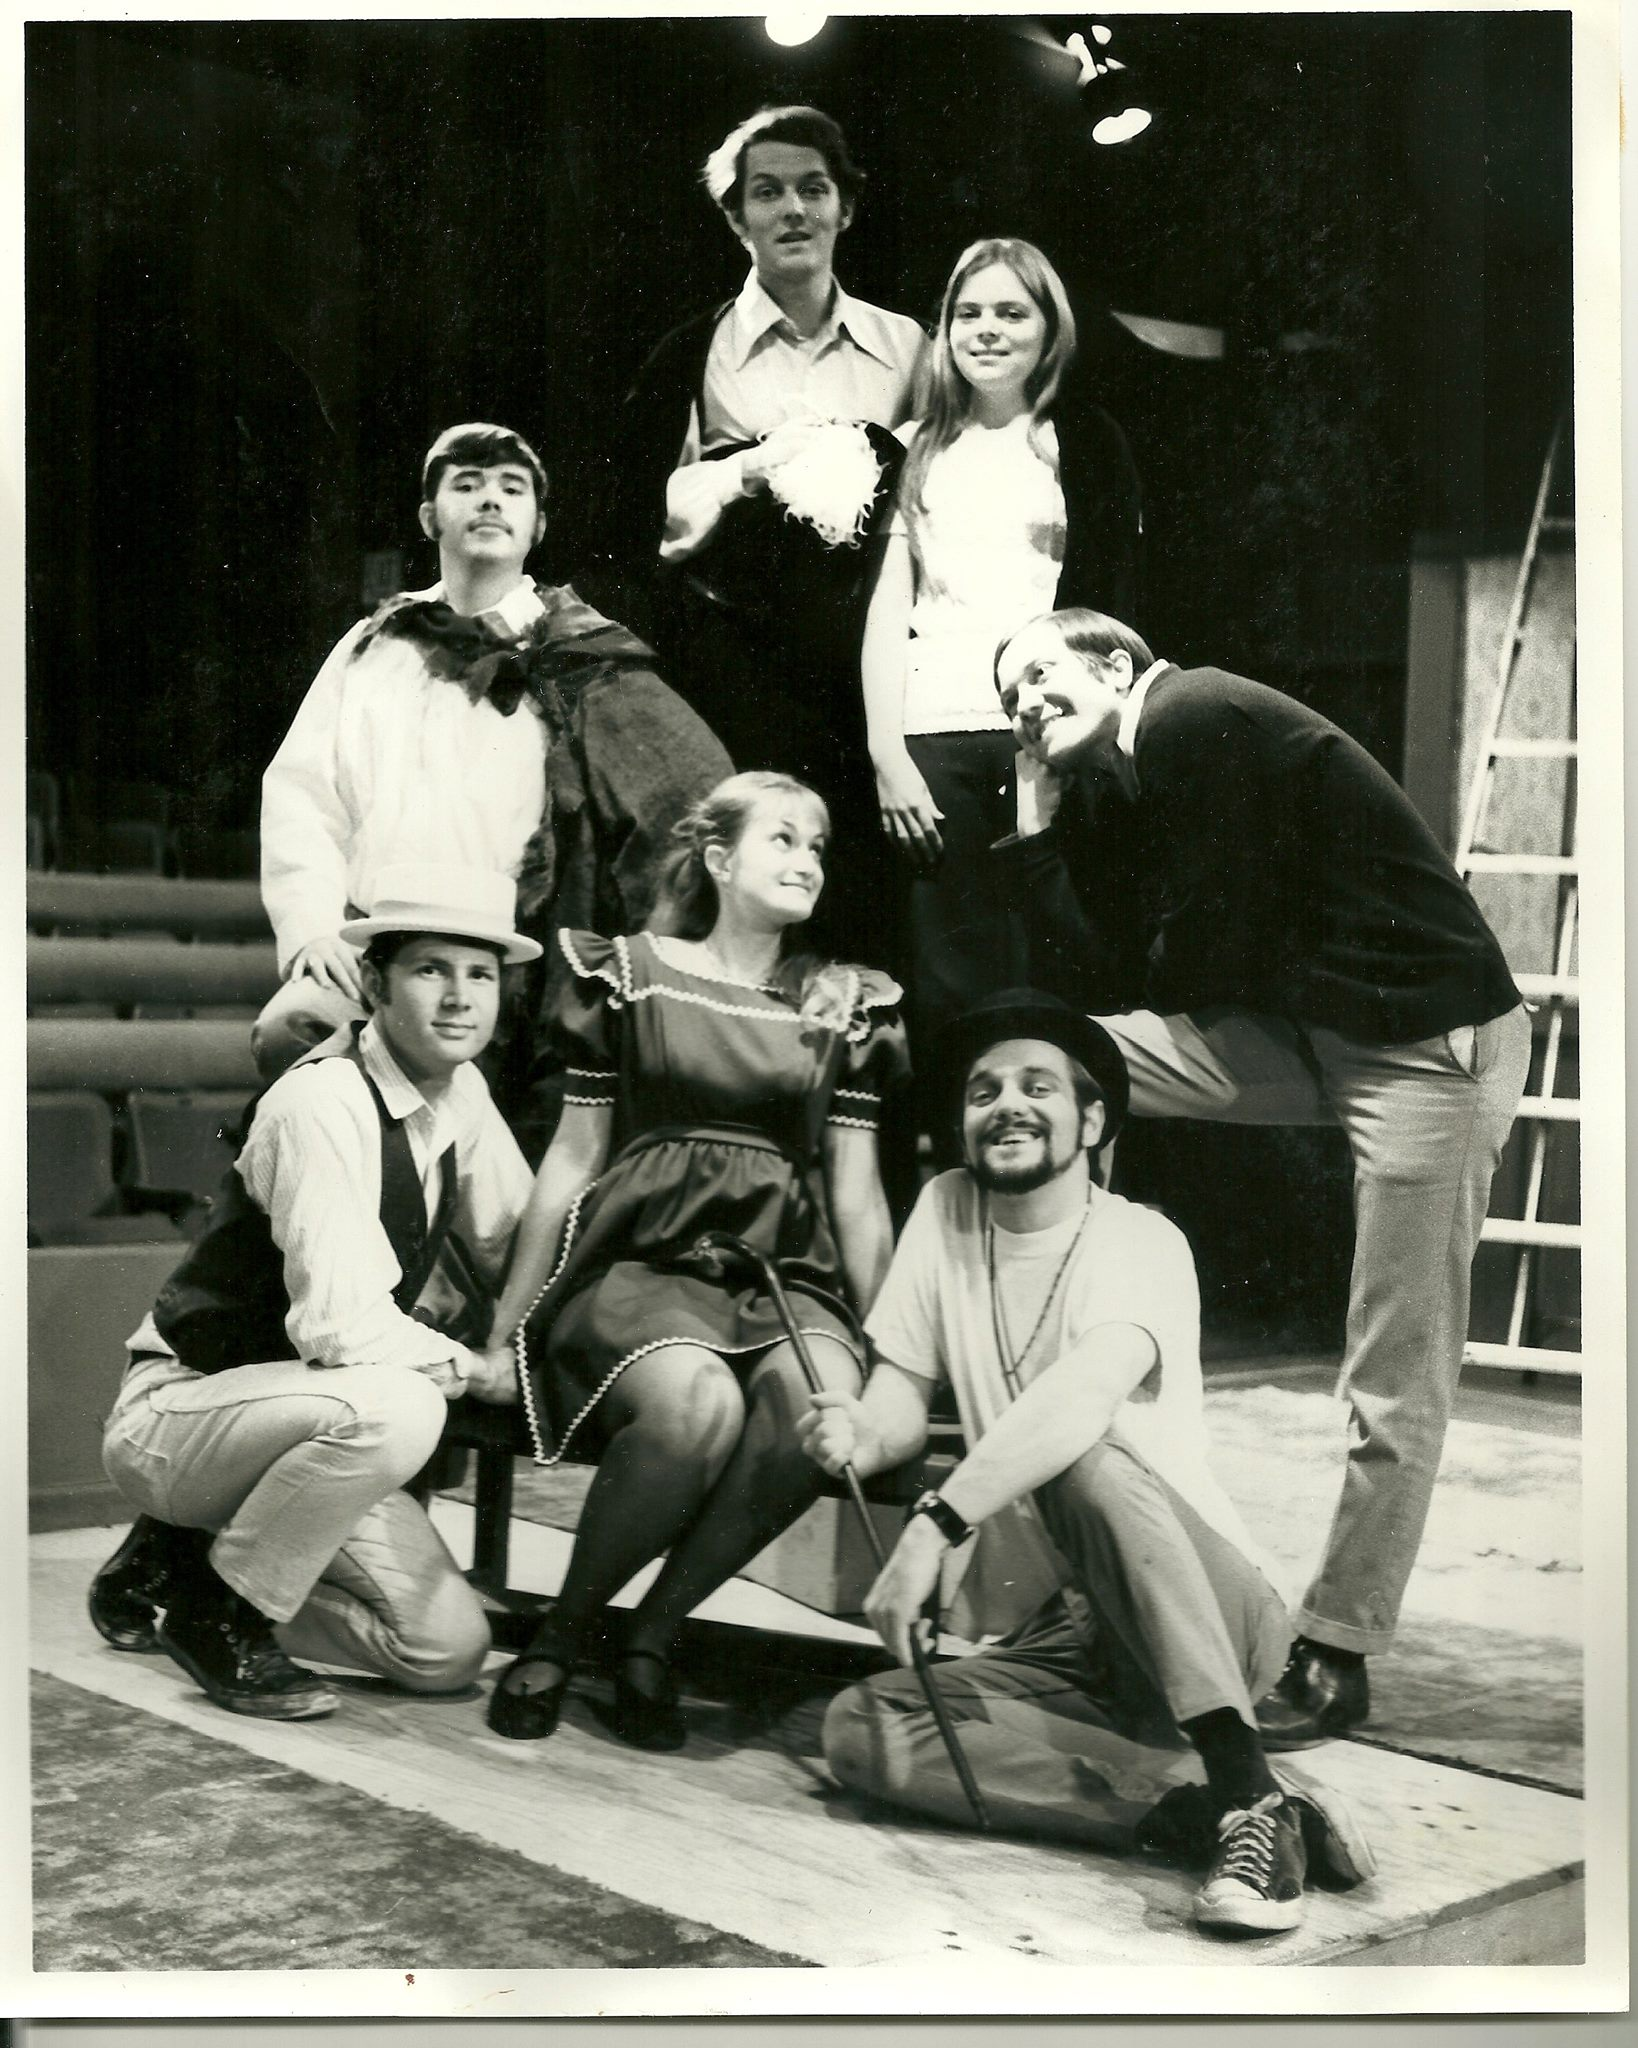 The Fantasticks in Redlands, CA in June, 1970. David Lee as El Gallo, Kathy Brombacher (then Logan) as Luisa (also the musical director), David Vining as the Girl's Father, Harold Dixon as the Boy's Father, Bonnie Sanders as the Mute, Brian Hurley as Matt, Mark Williams as the Old Actor, and directed by Dennis Robinson, who also played the Man Who Dies. The production was dedicated to drama teachers at the University of Redlands, Al and Bertha Johnson, who retired that year.